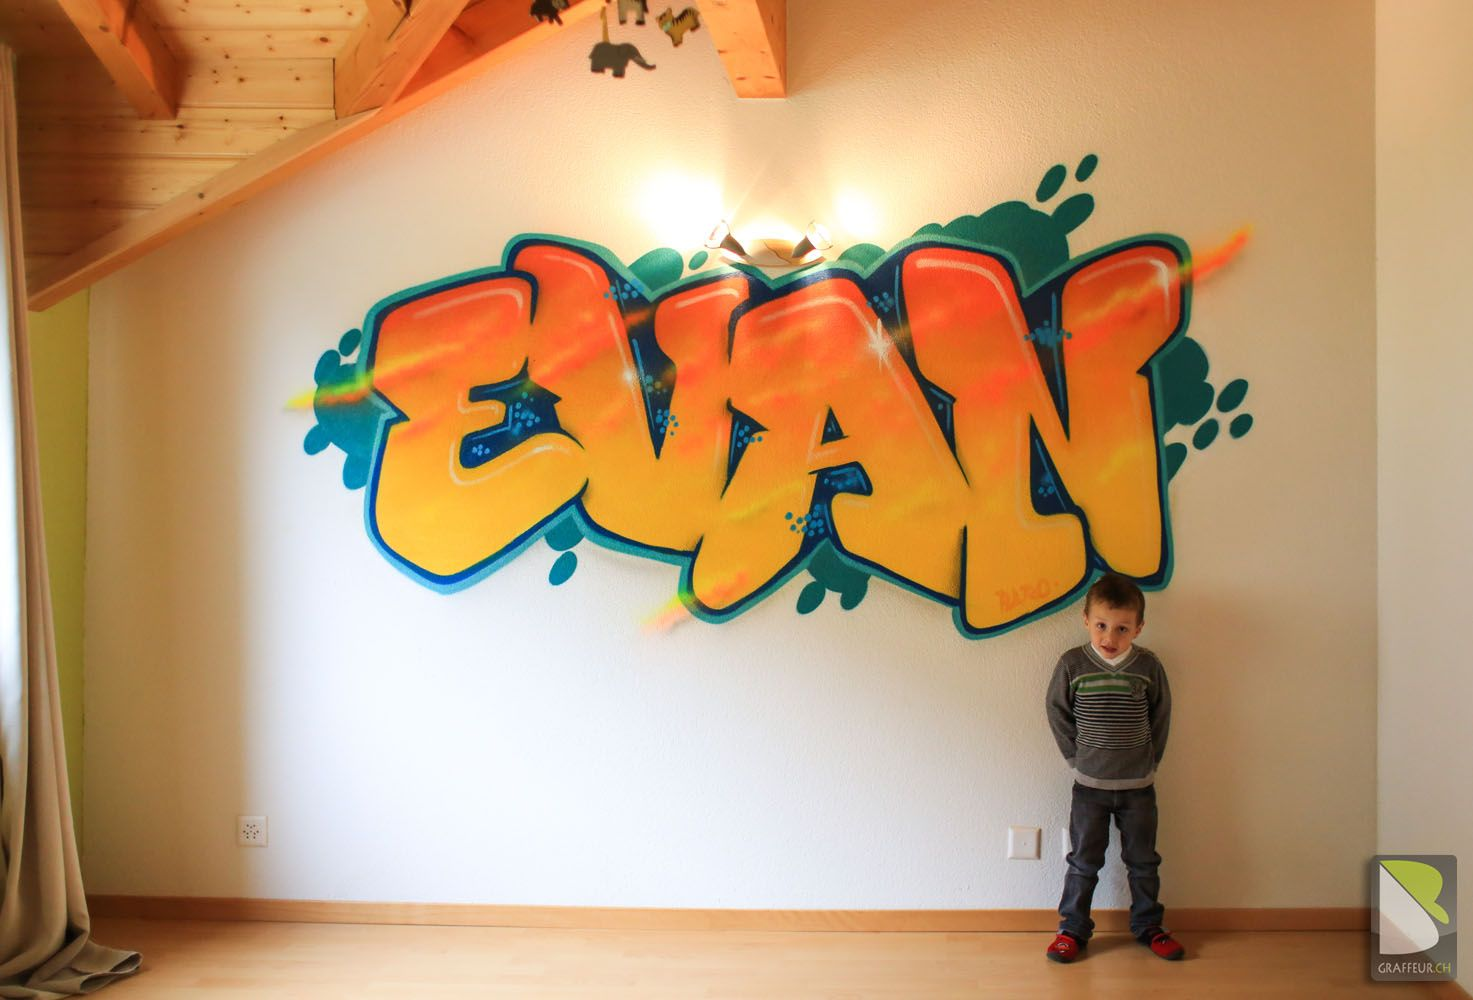 Chambre graffiti suisse evan enfant signs pinterest for Chambre arabo suisse